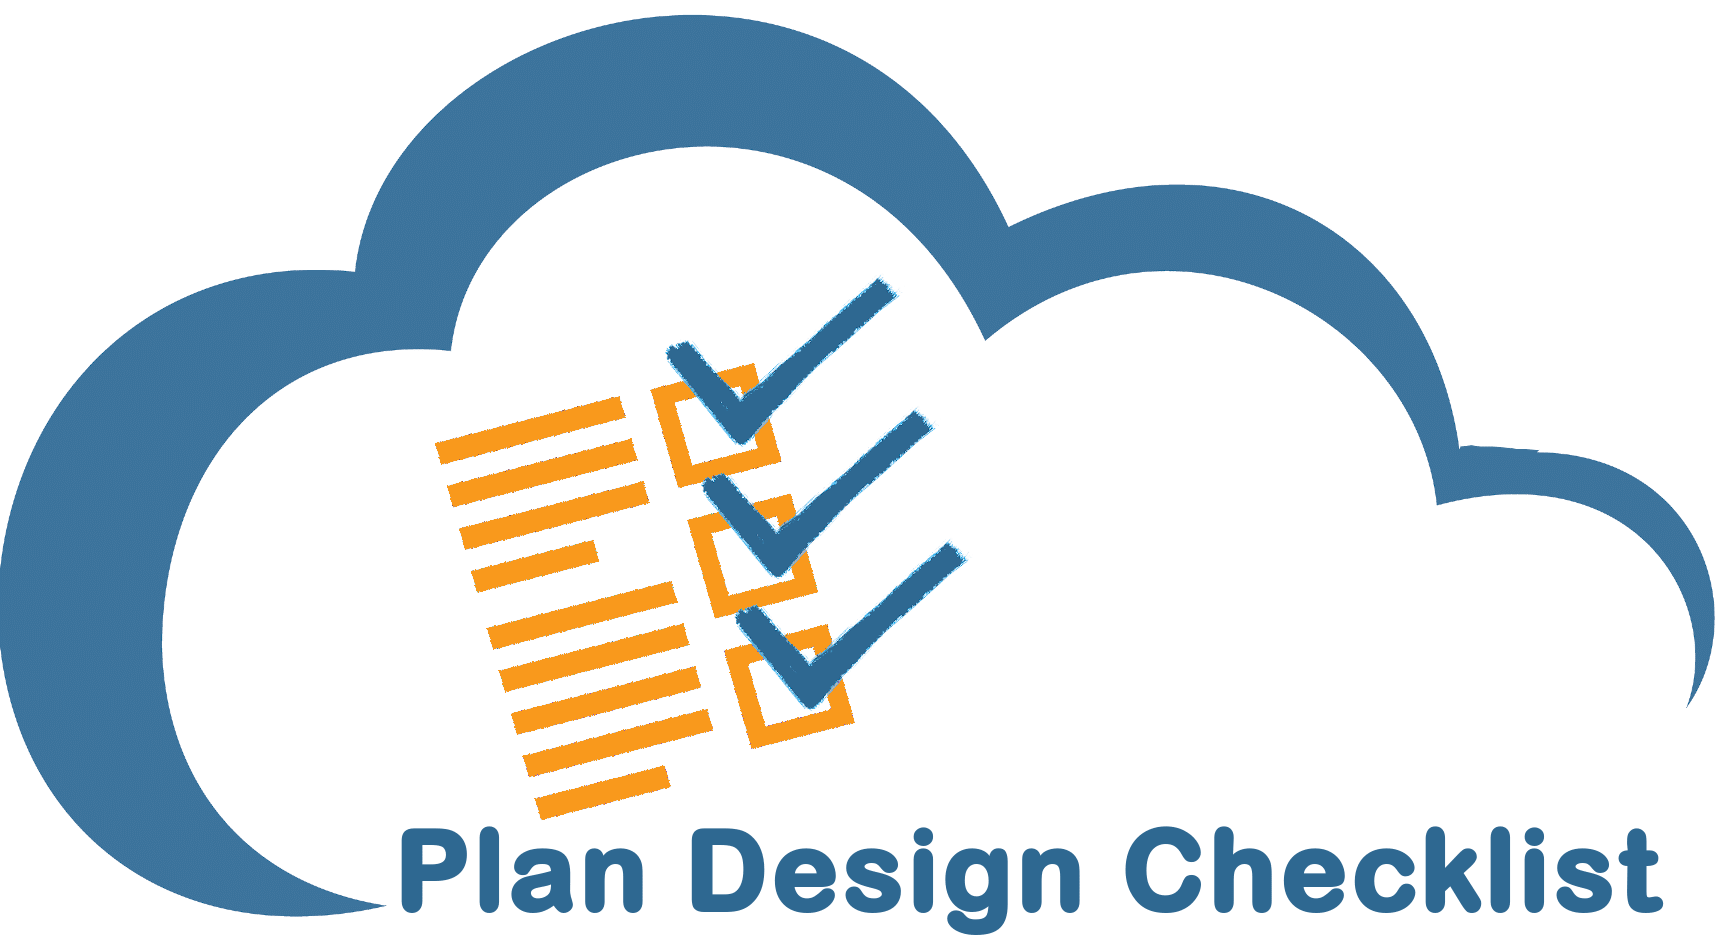 Plan Design Checklist logo4